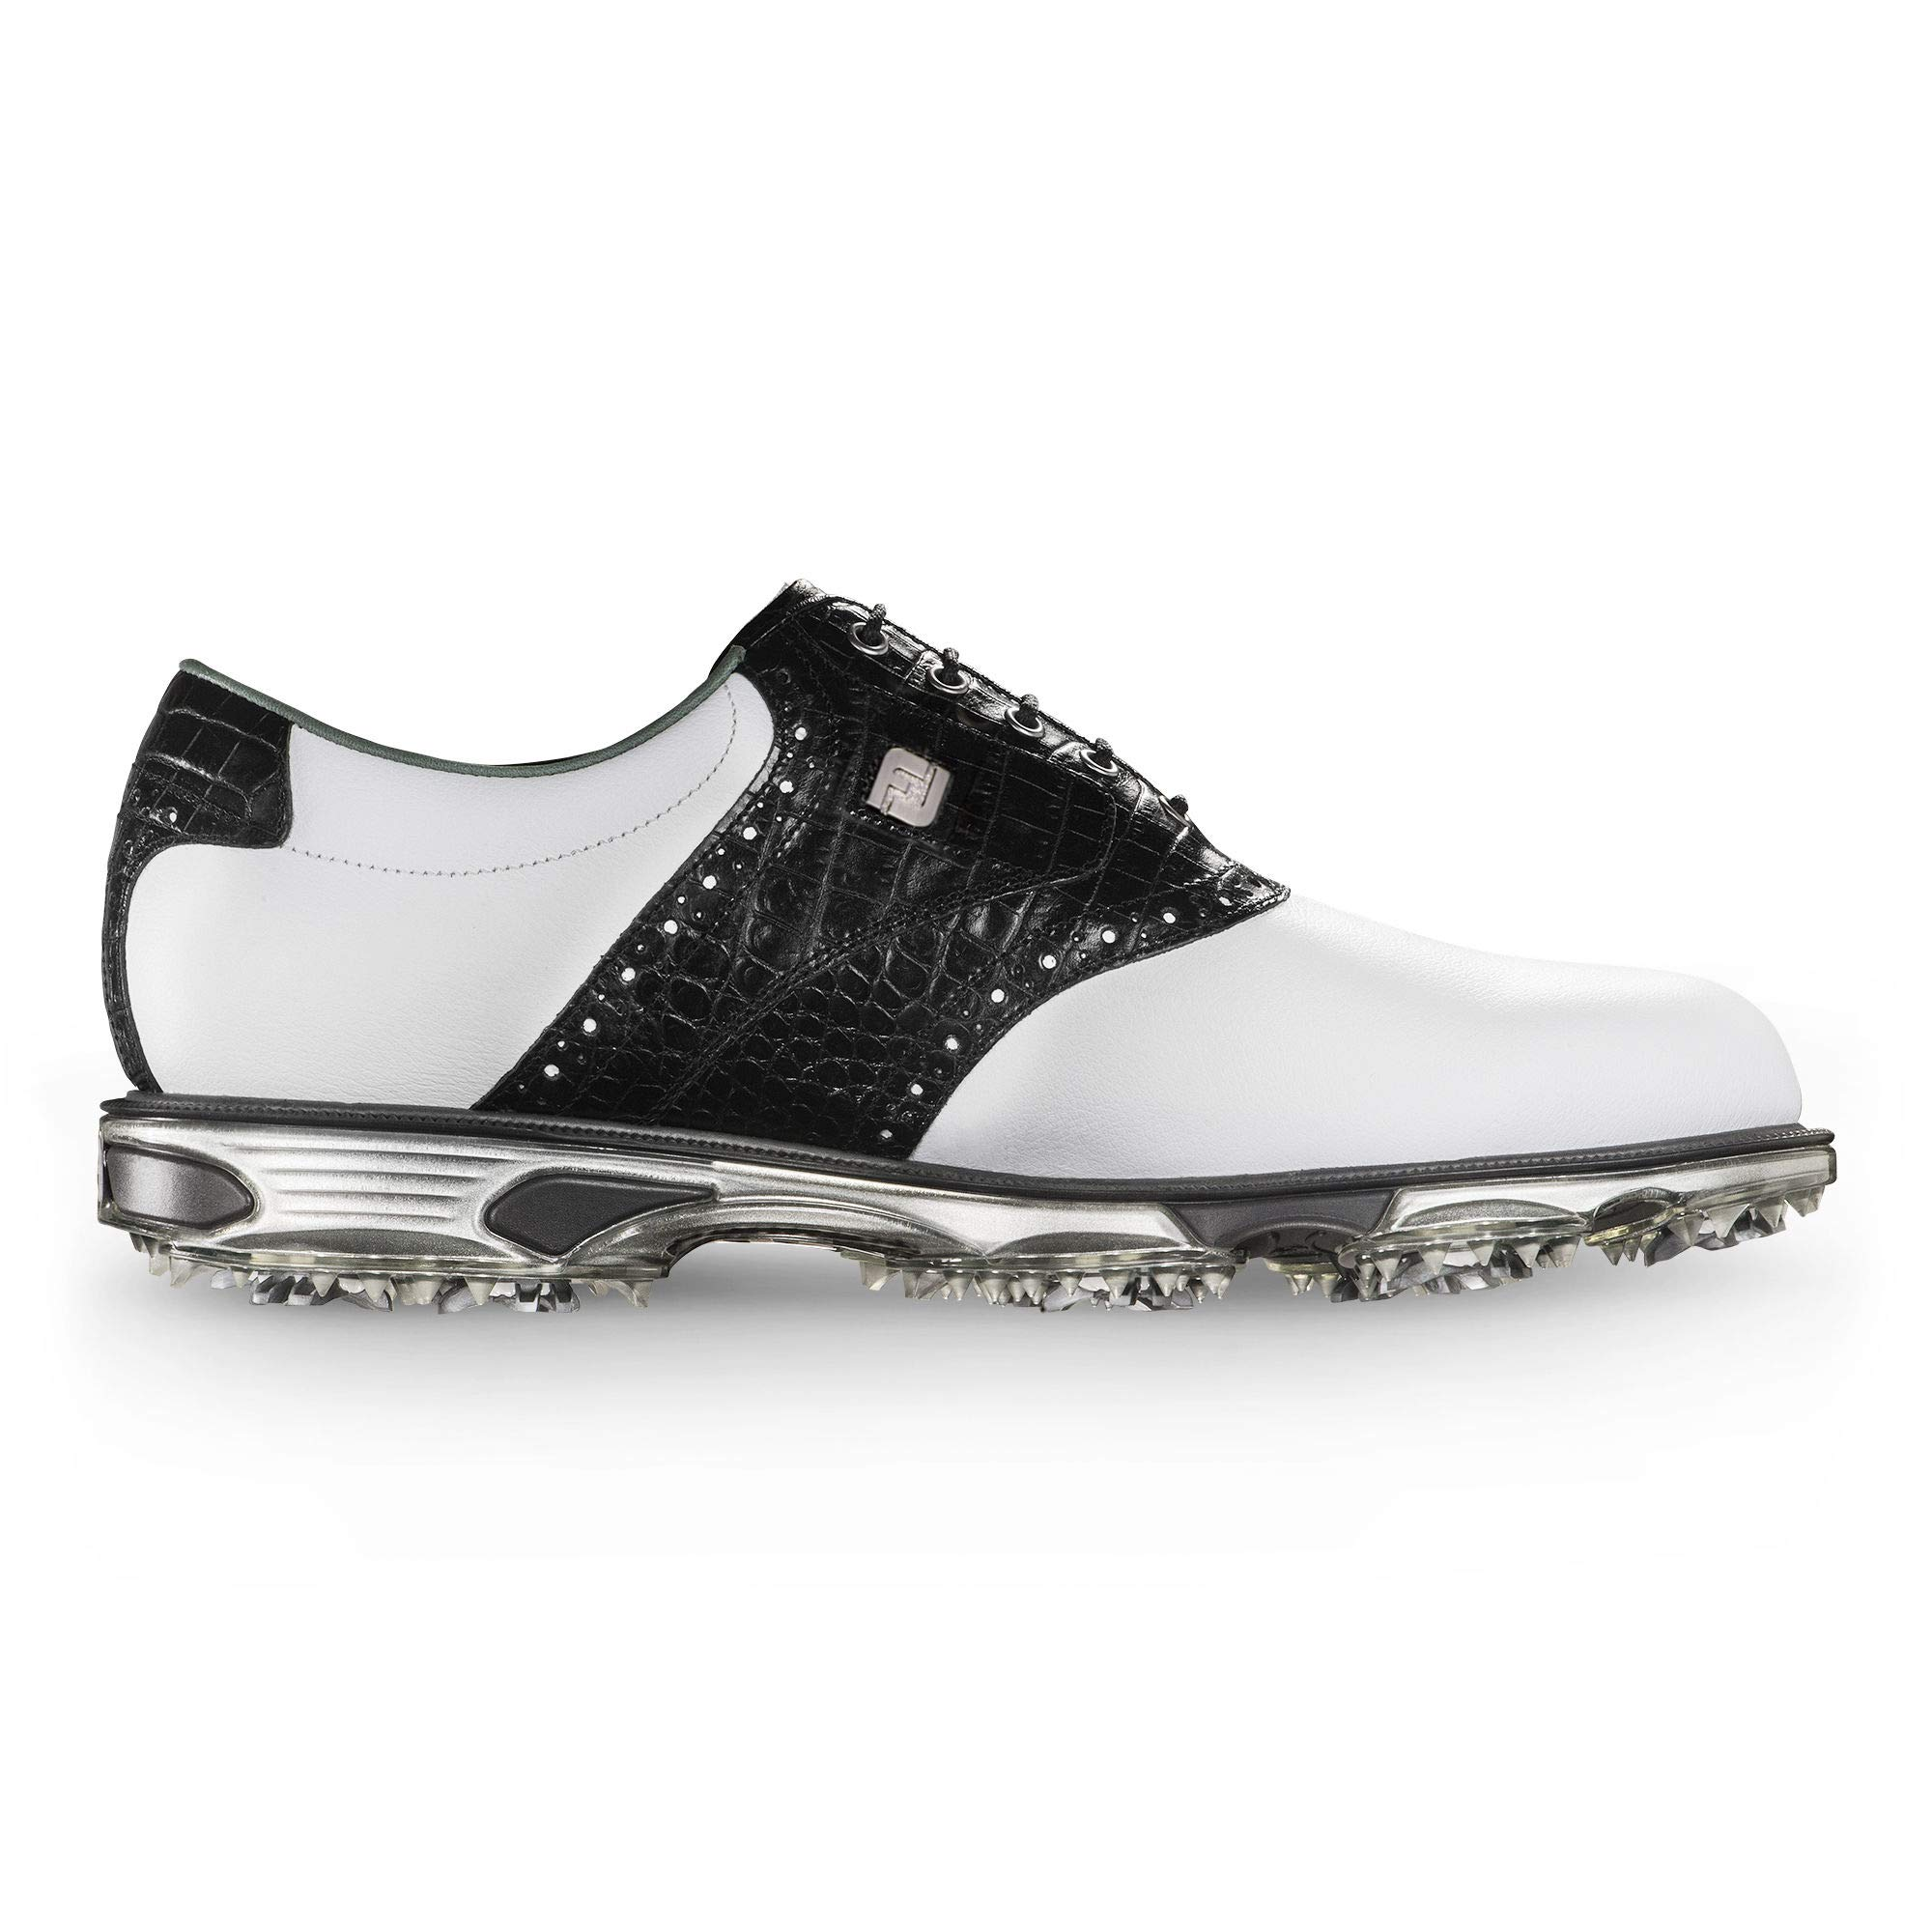 FootJoy Men's DryJoys Tour Golf Shoes White 10.5 XW Black Croc Print, US by FootJoy